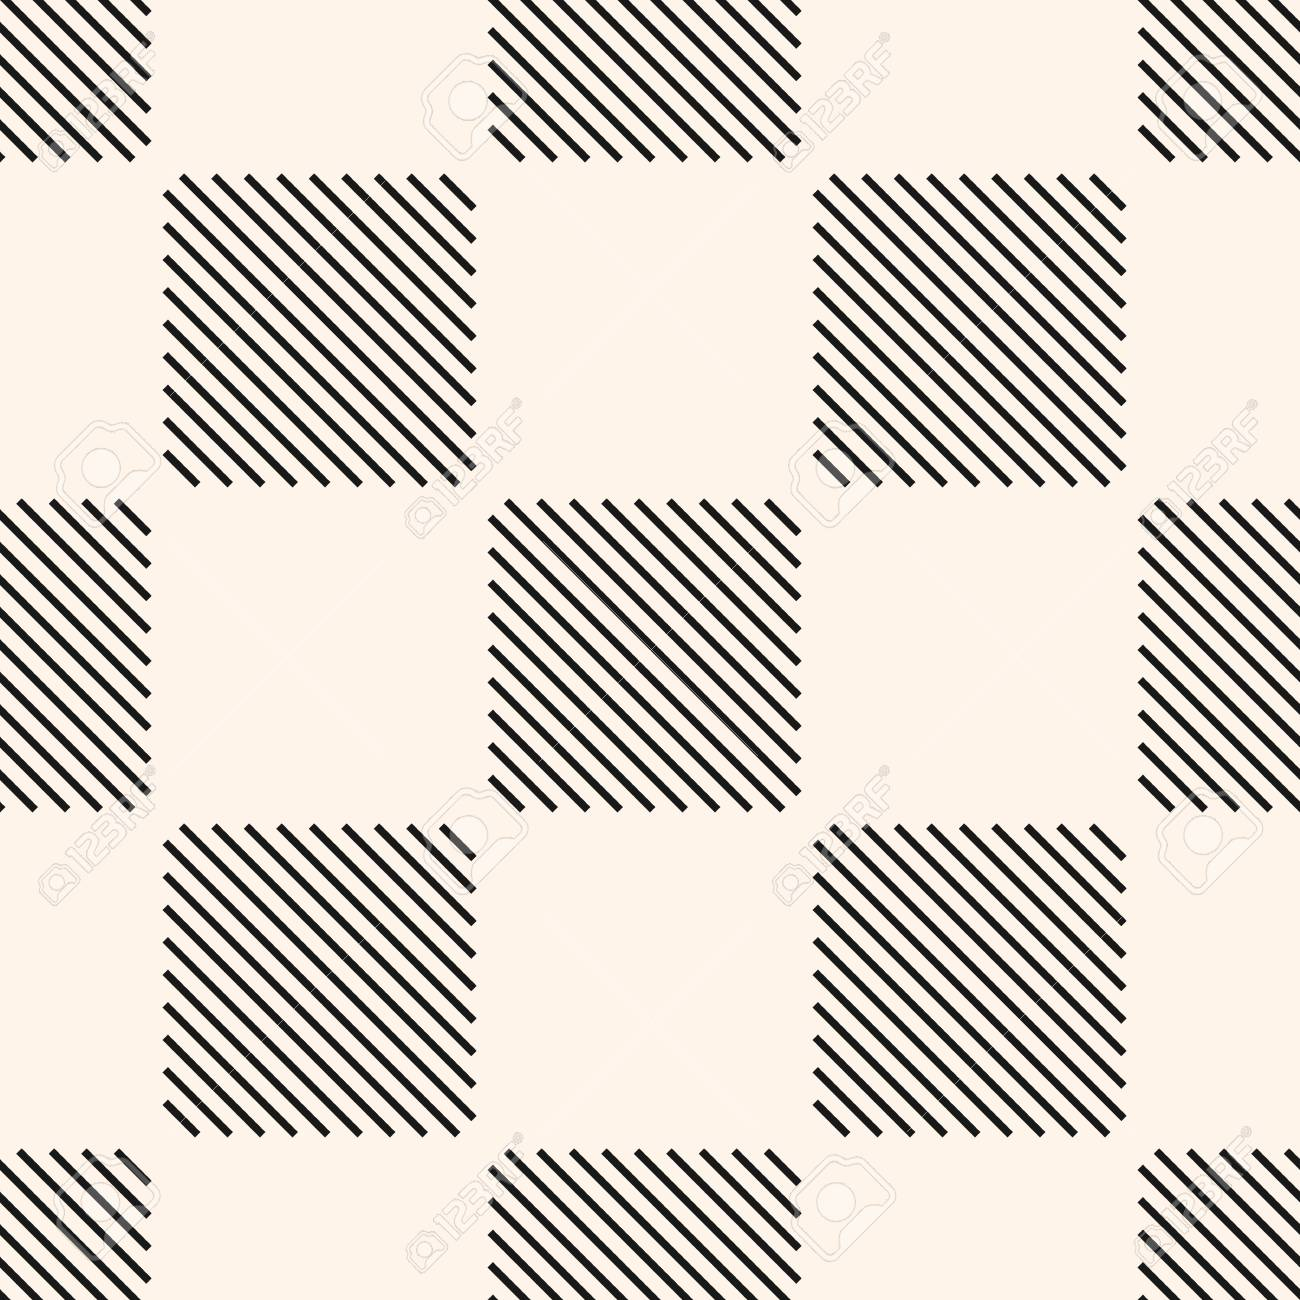 Vector geometric seamless pattern with stripes, thin diagonal